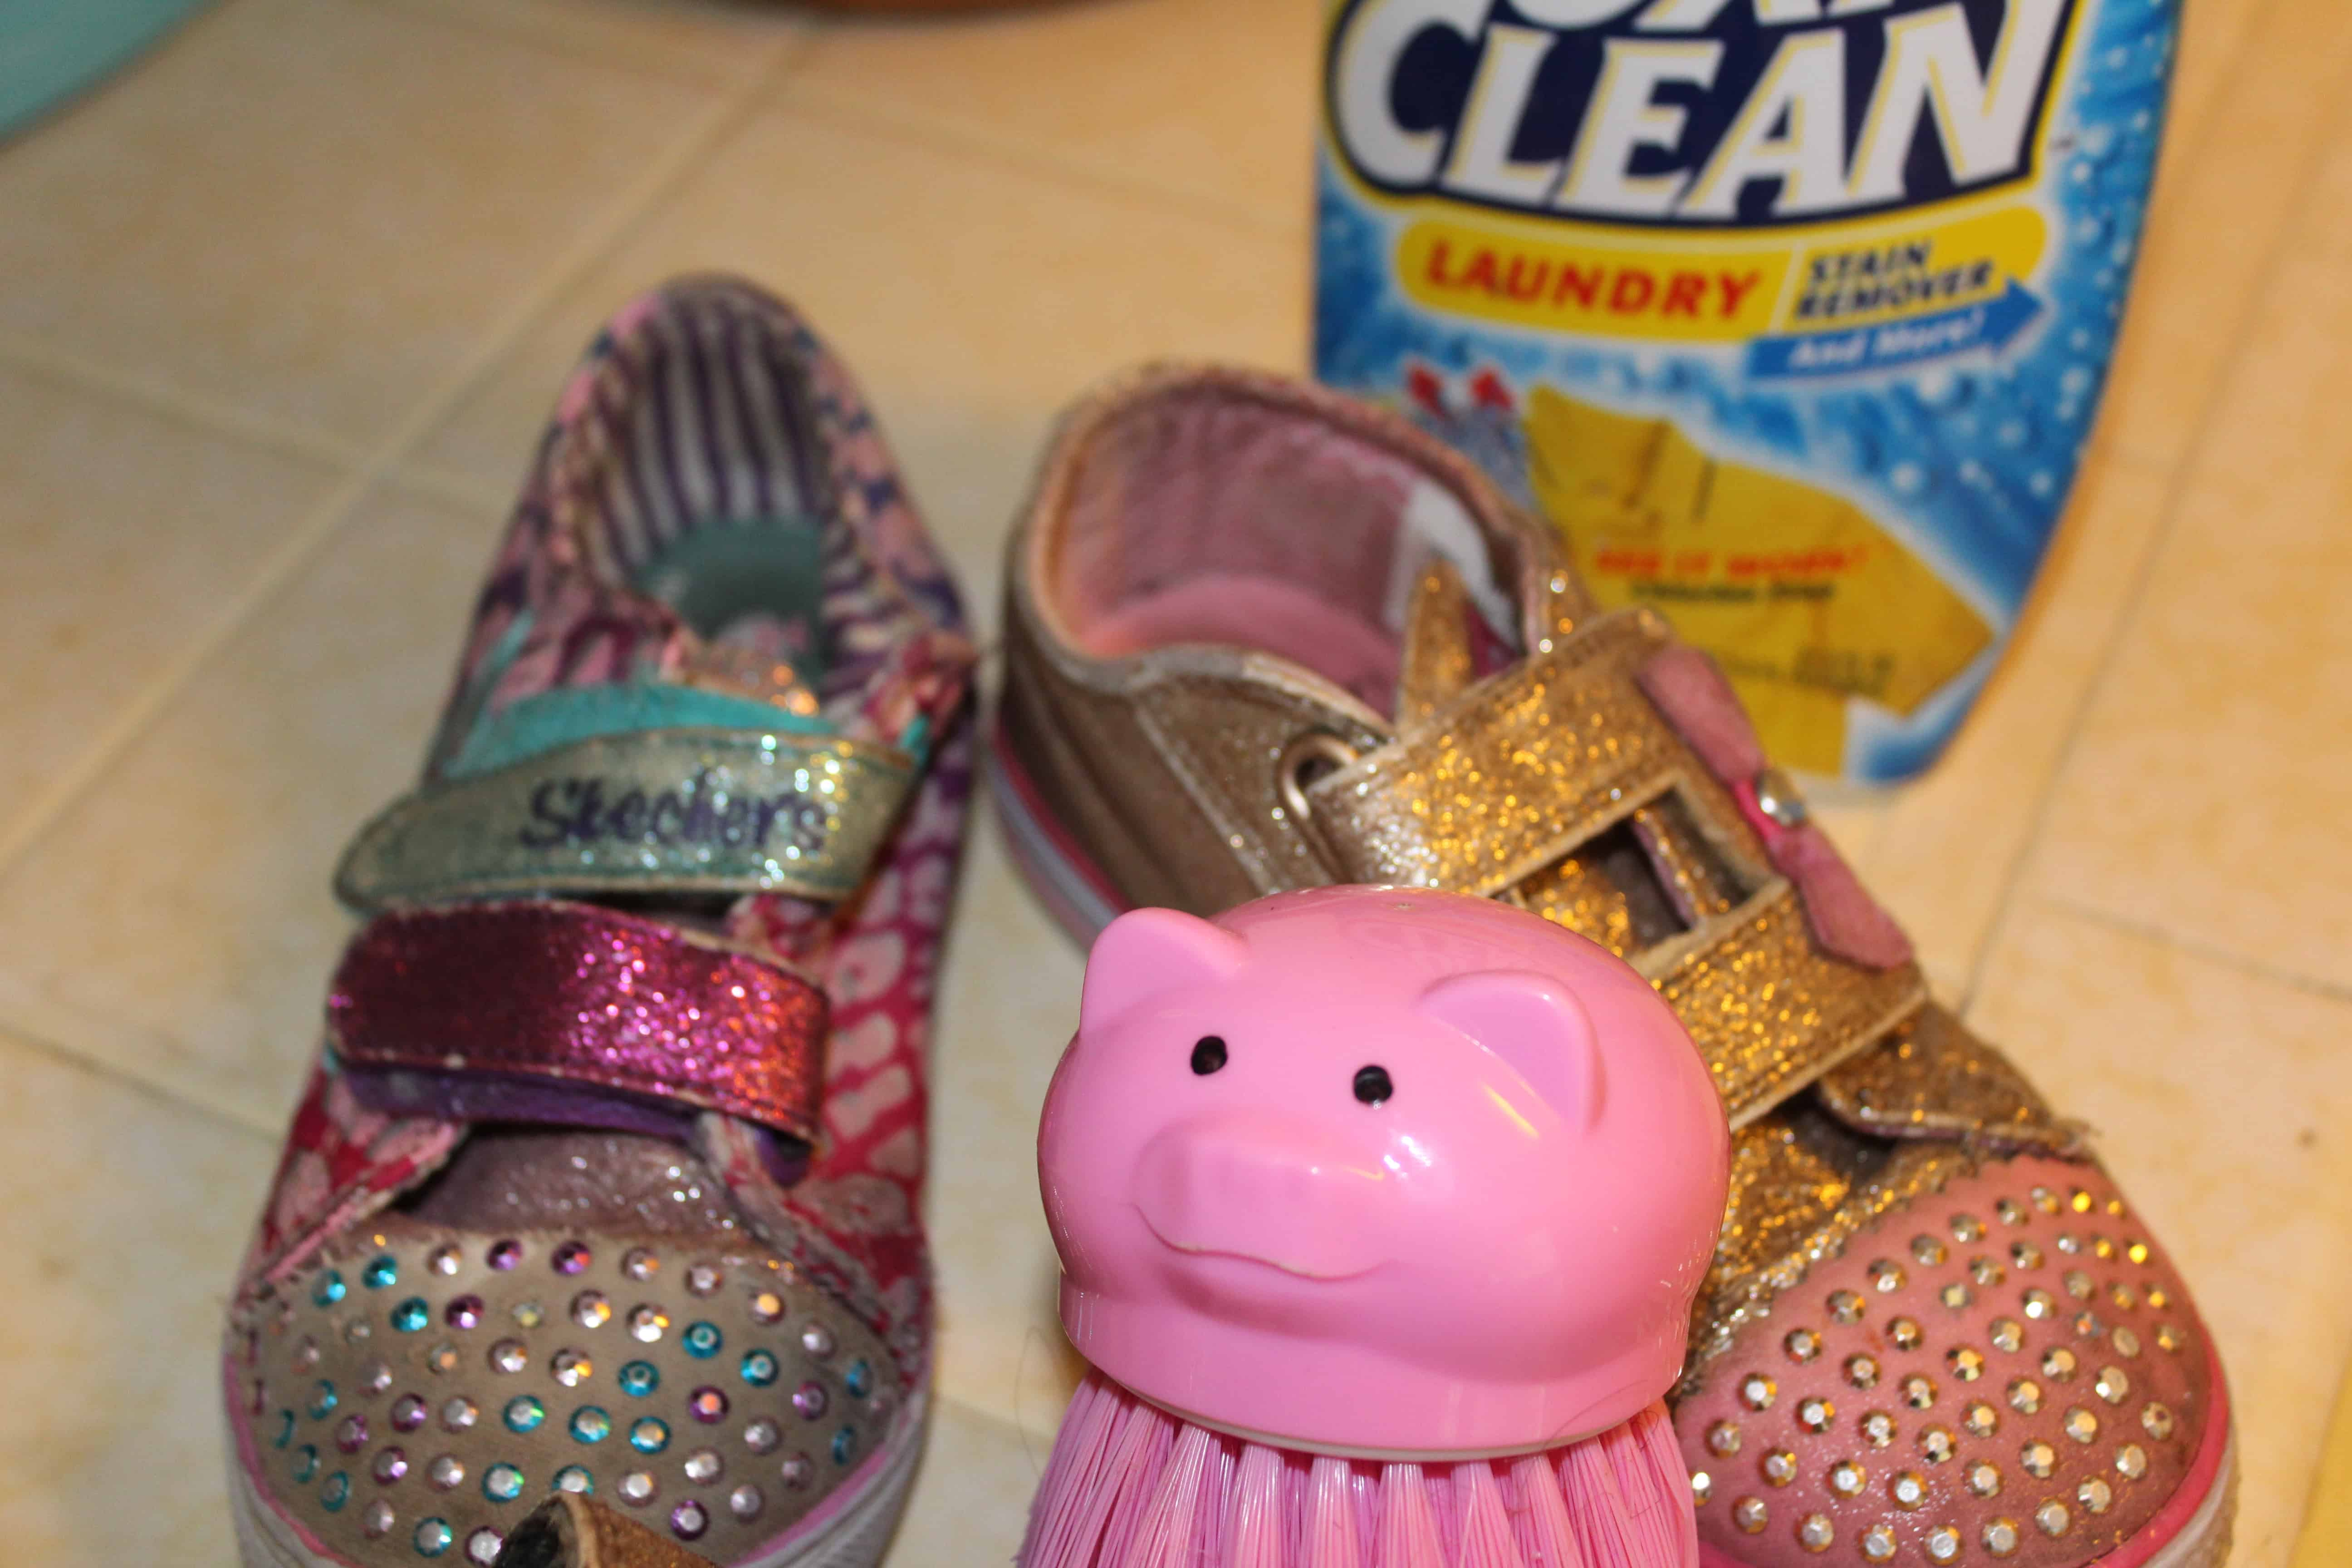 A pair of dirty shoes sitting next to a pig shaped scrub brush with a bottle of Oxiclean in the back ground